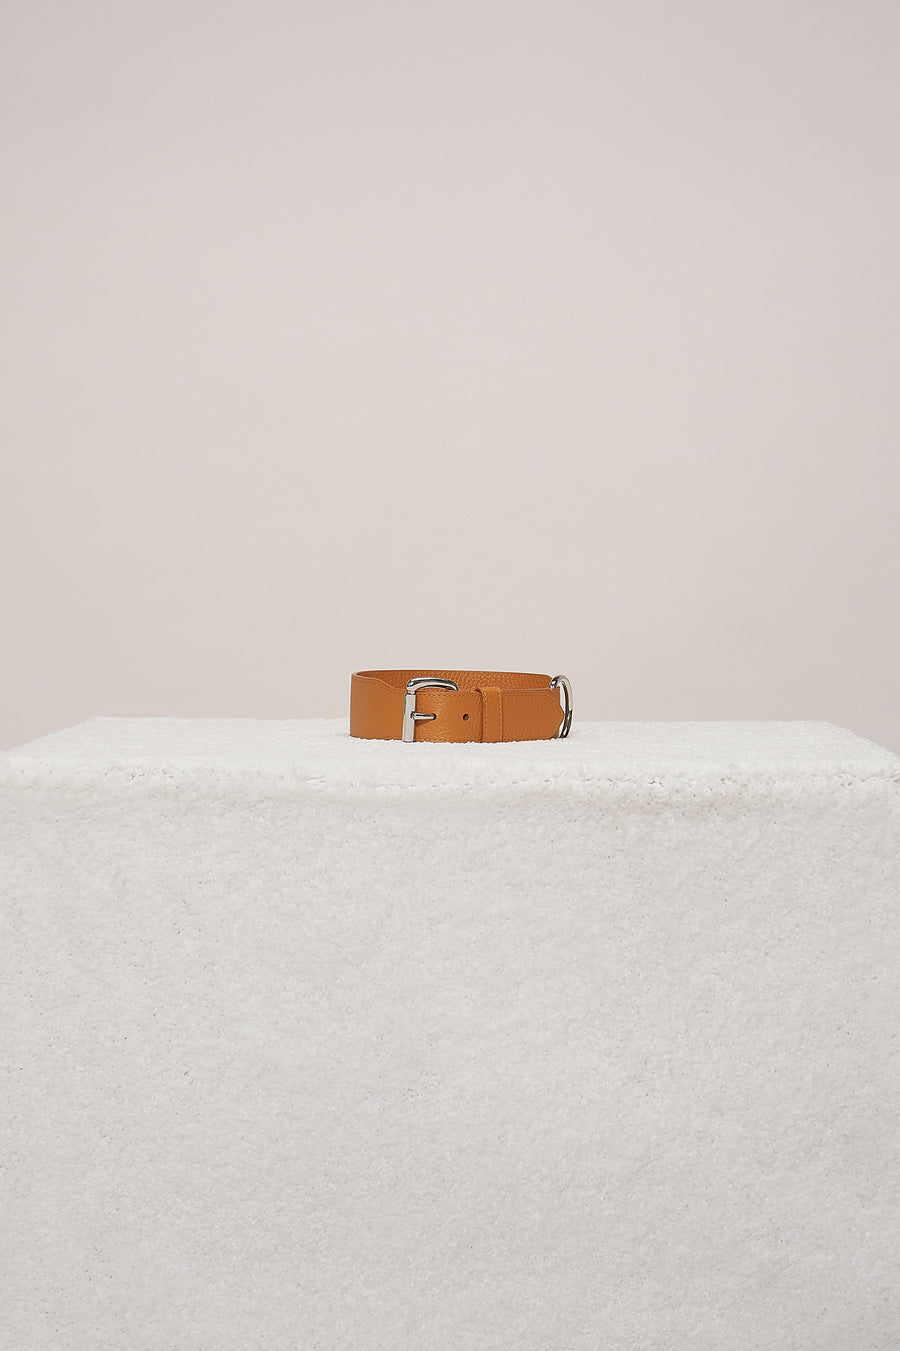 CaSa Dog Collar in Toffee